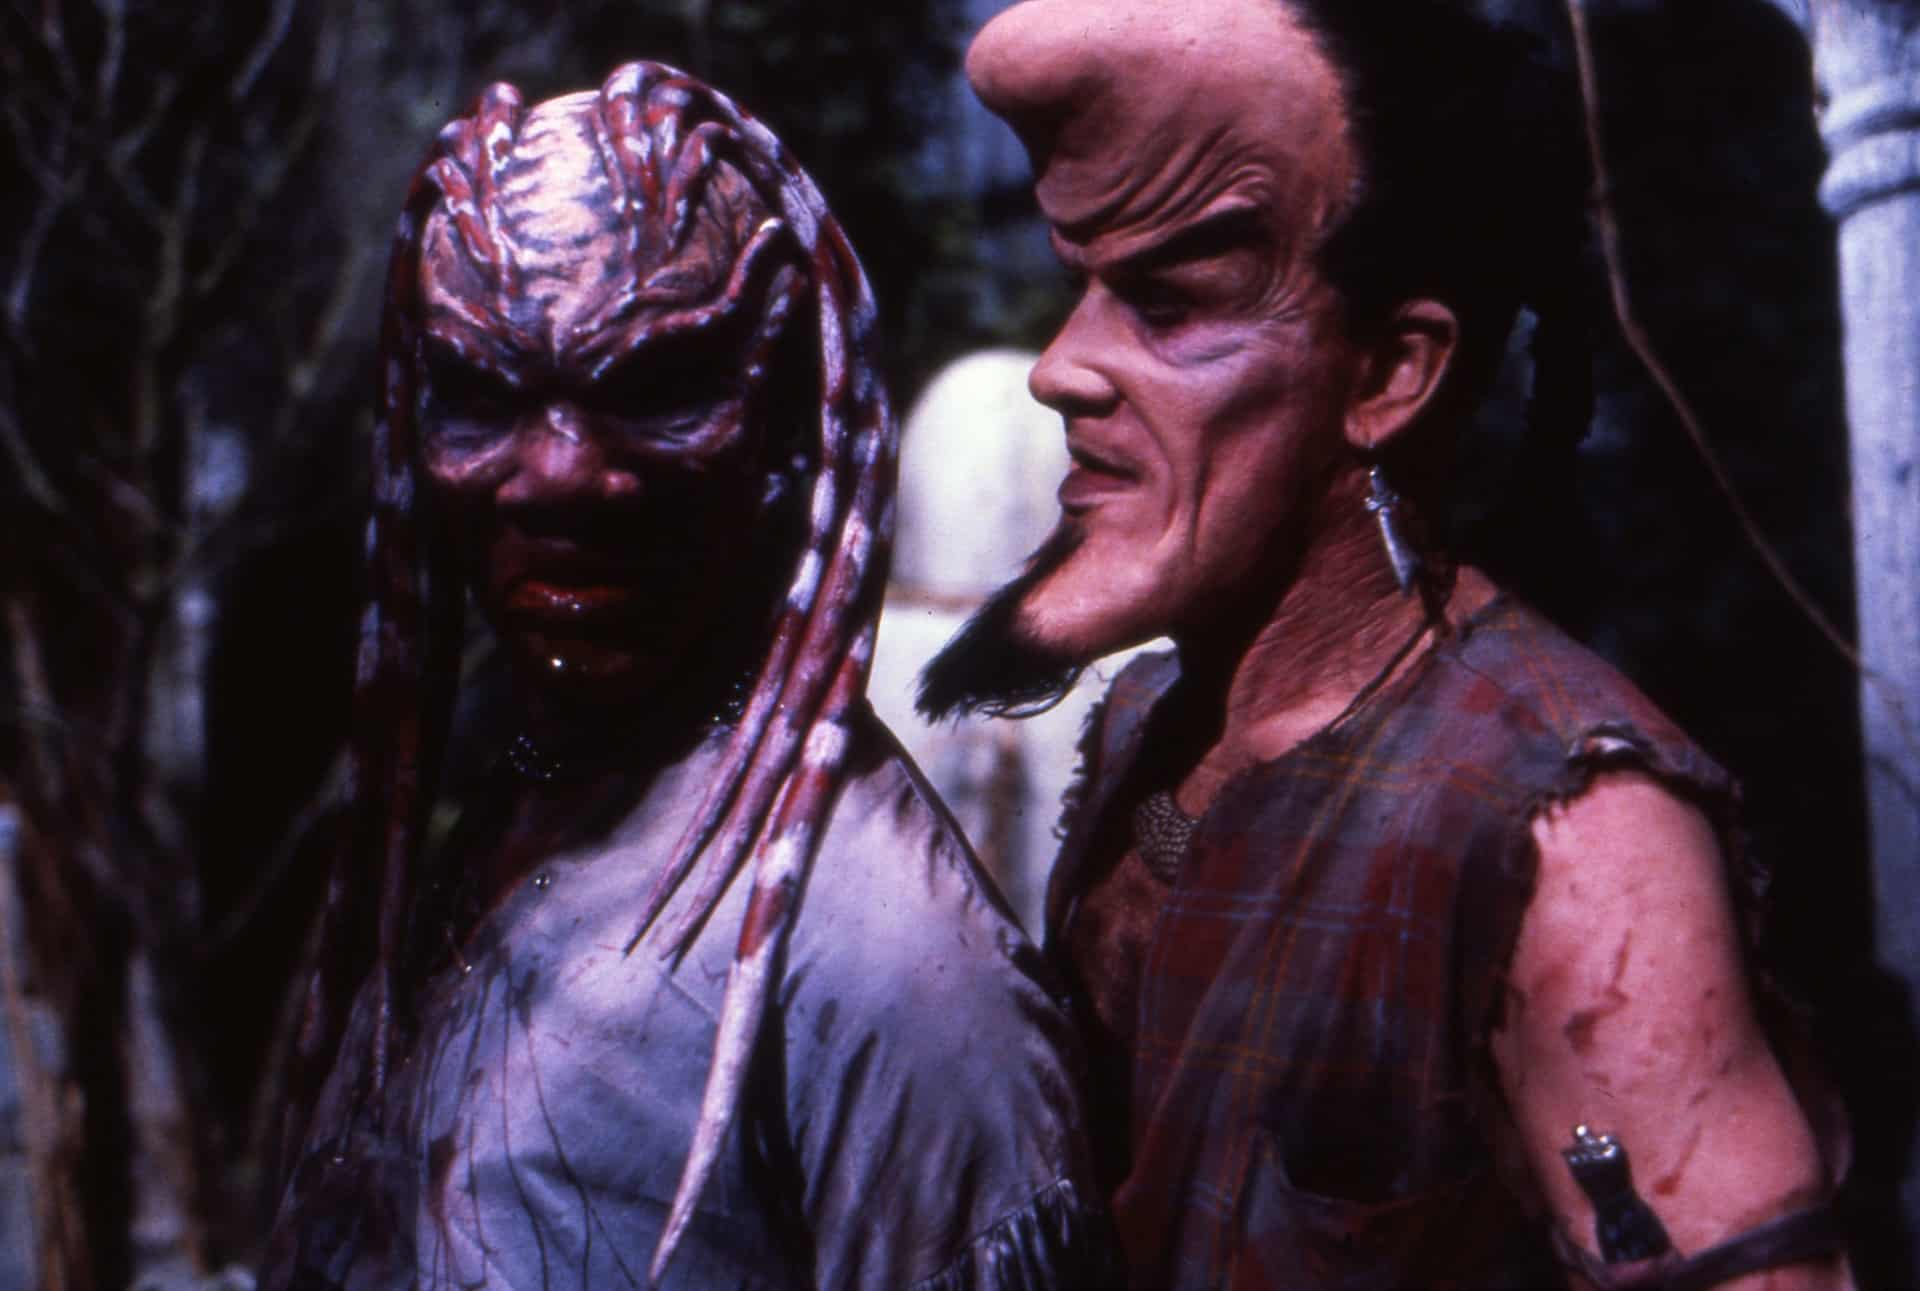 Peloquin (Oliver Parker) and Kinski (Nicholas Vince) - two of the extraordinary makeup creations for the Breed in Nightbreed (1990)